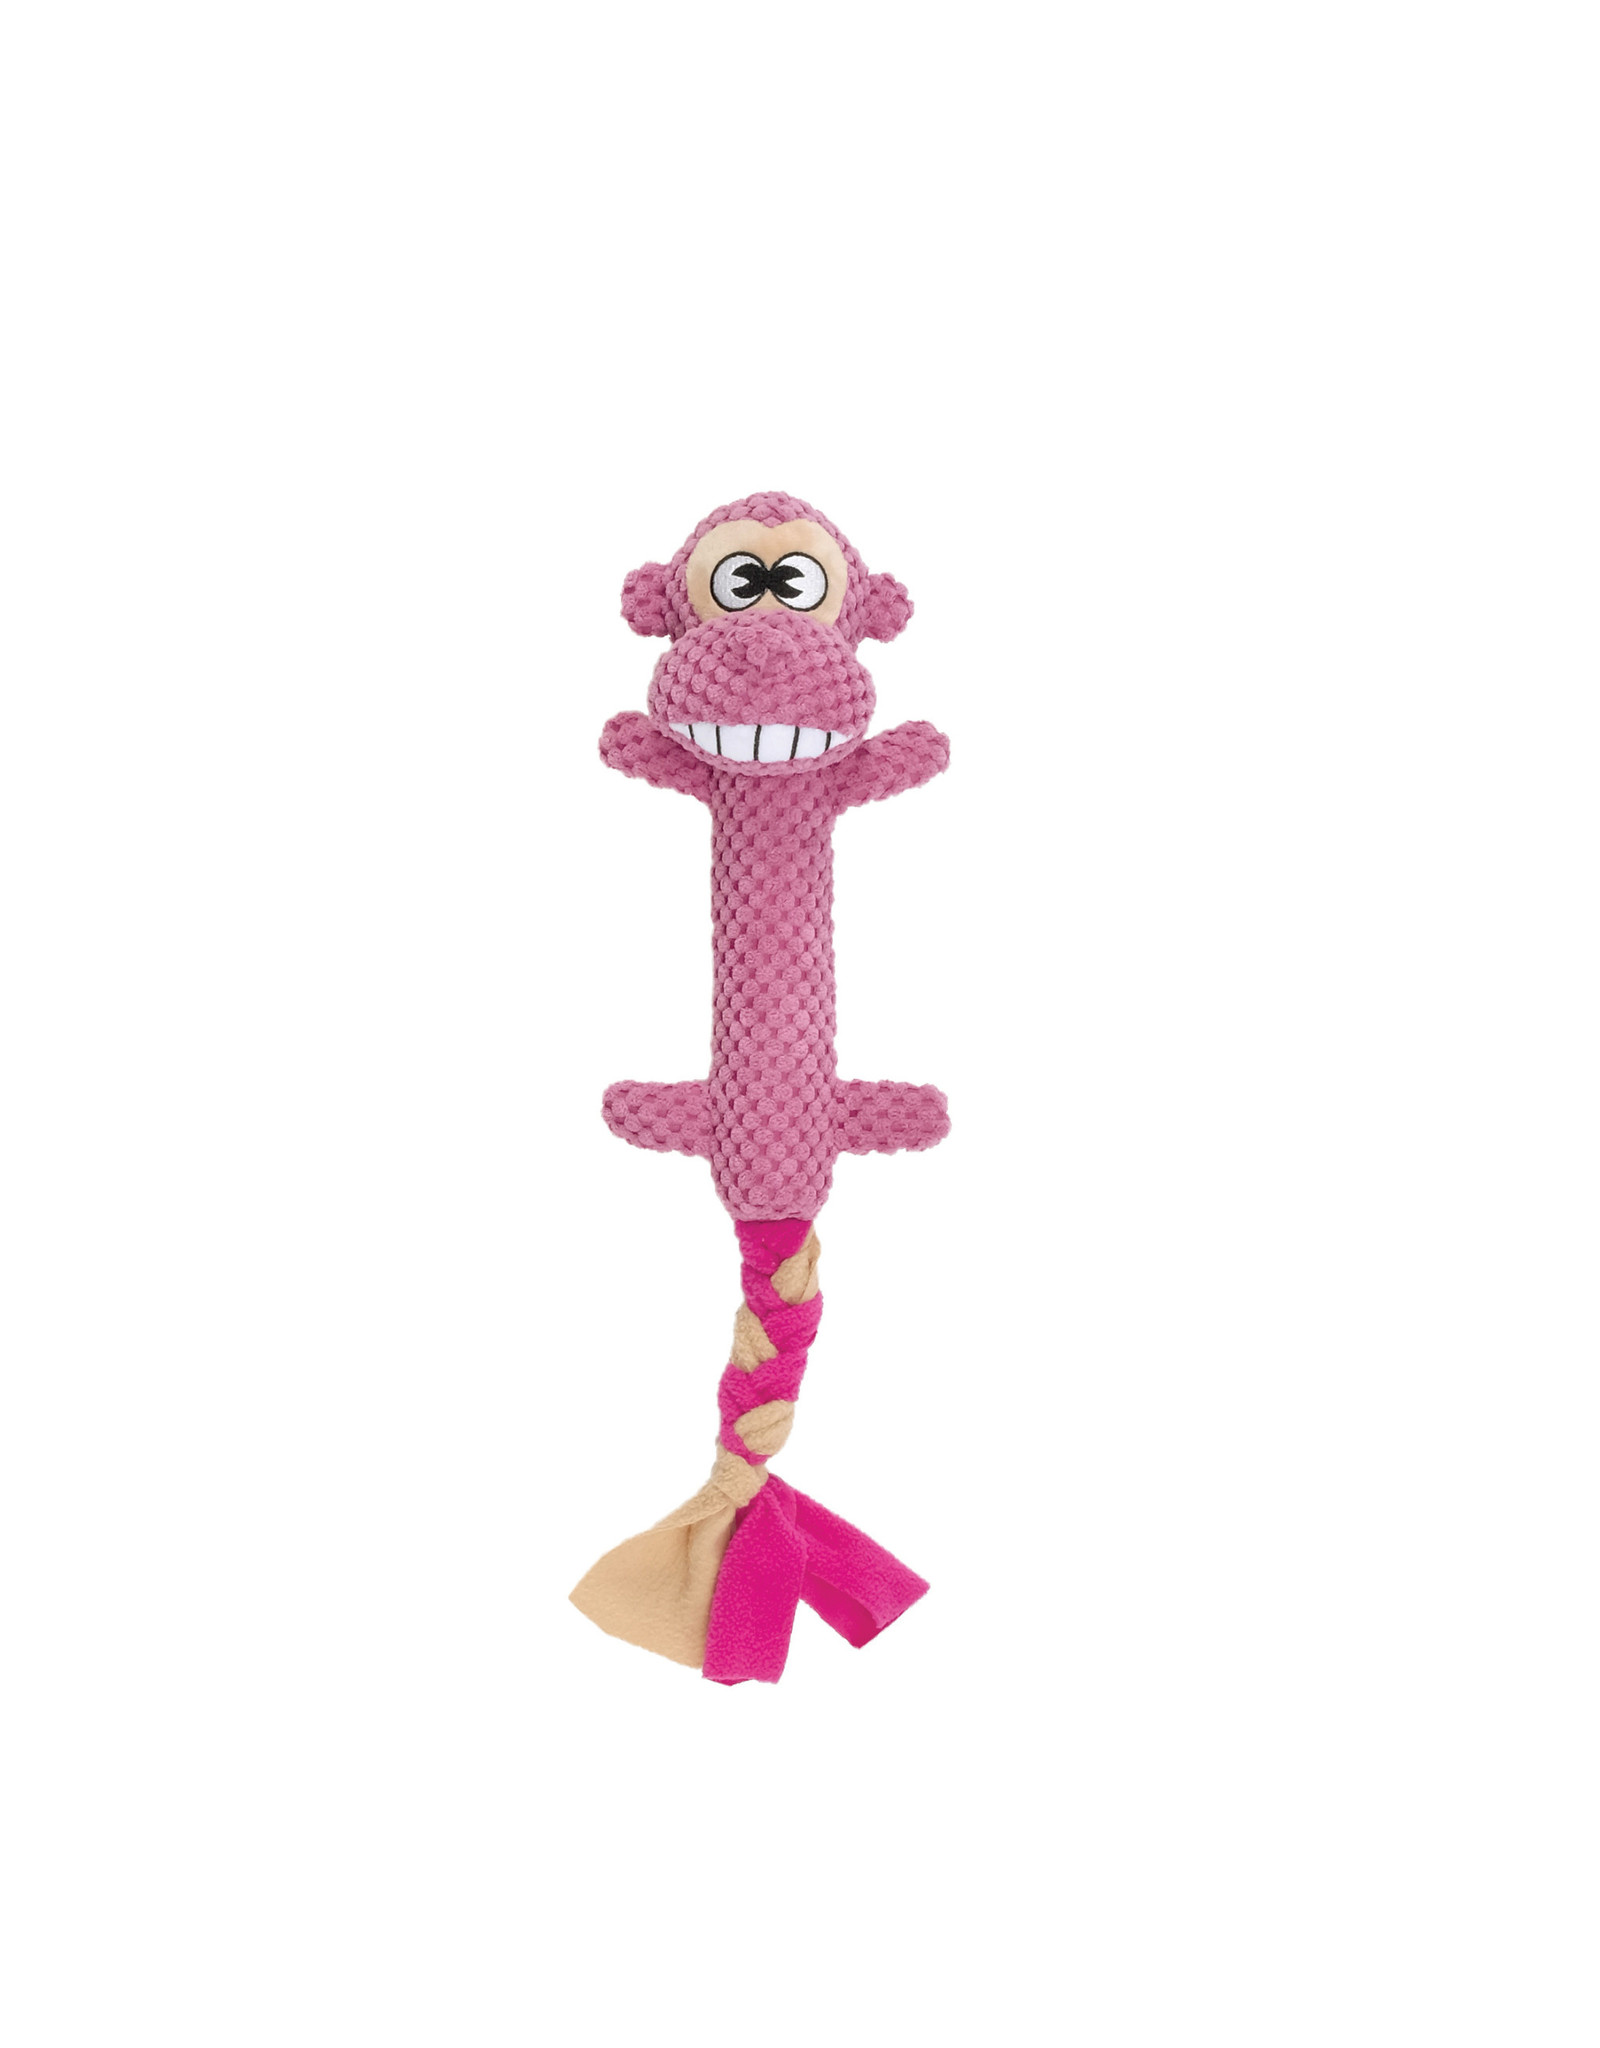 DO - Dogit Dogit Stuffies Dog Toy – Branch Friend - Monkey - 44 cm